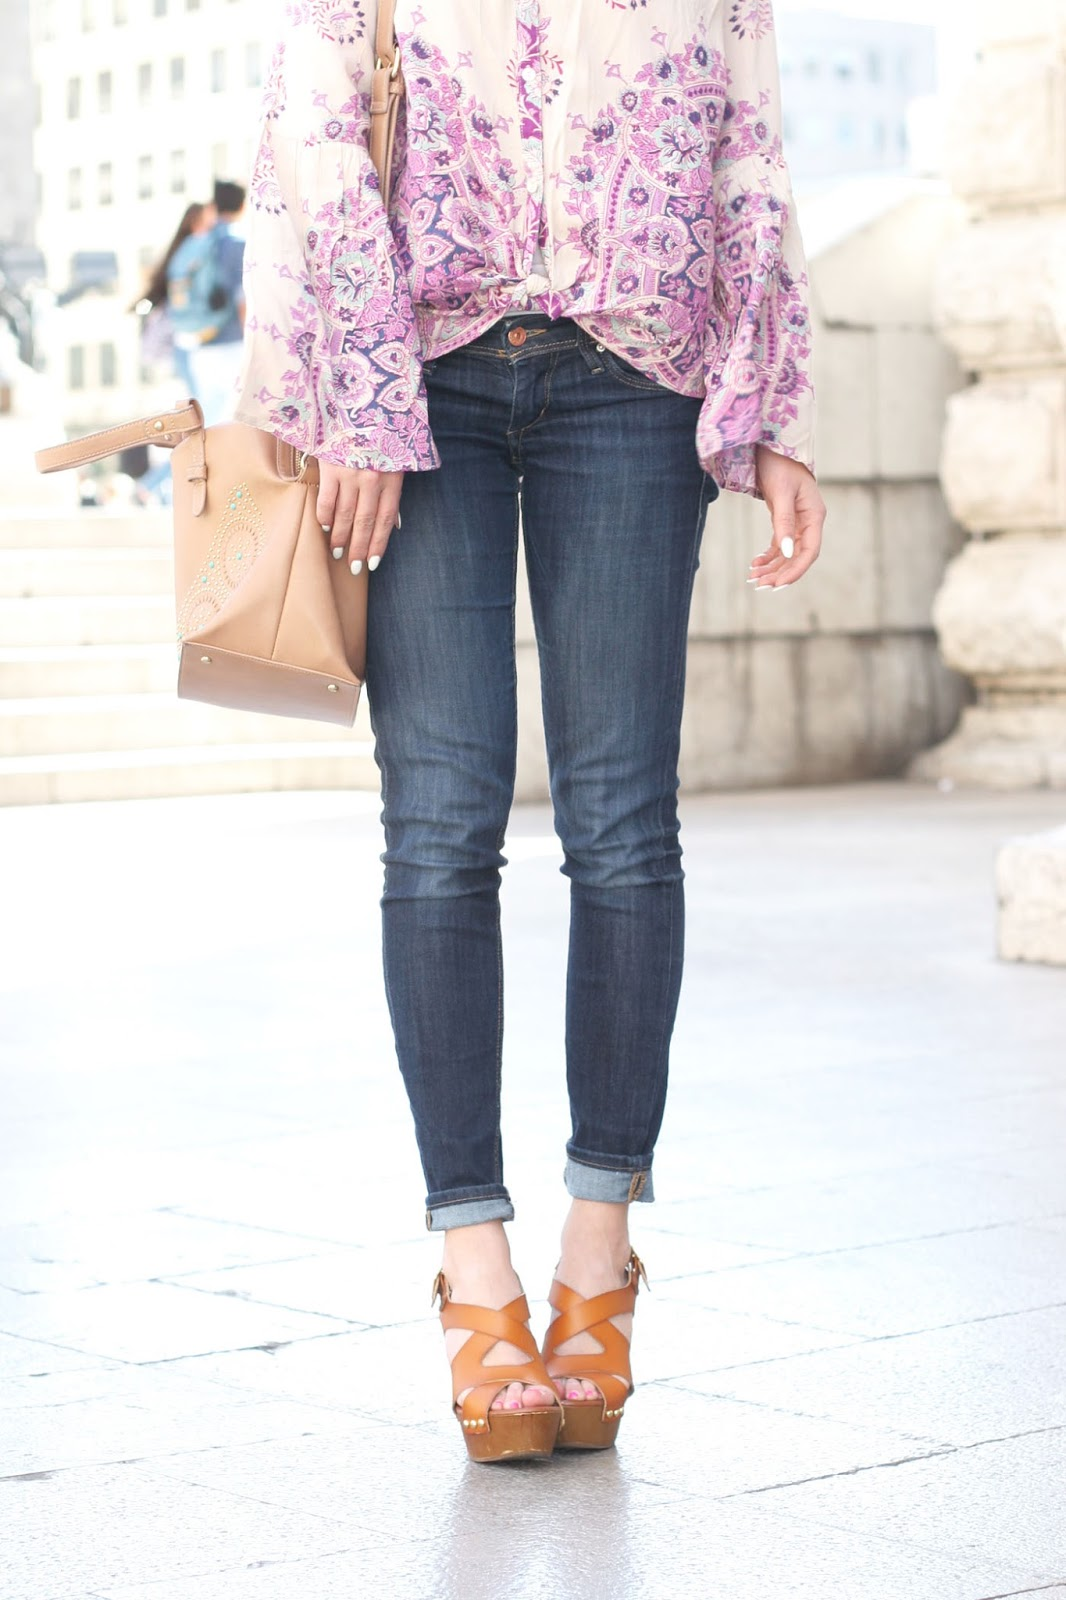 boho-perfect-streets-style-look-with-paisley-blouse